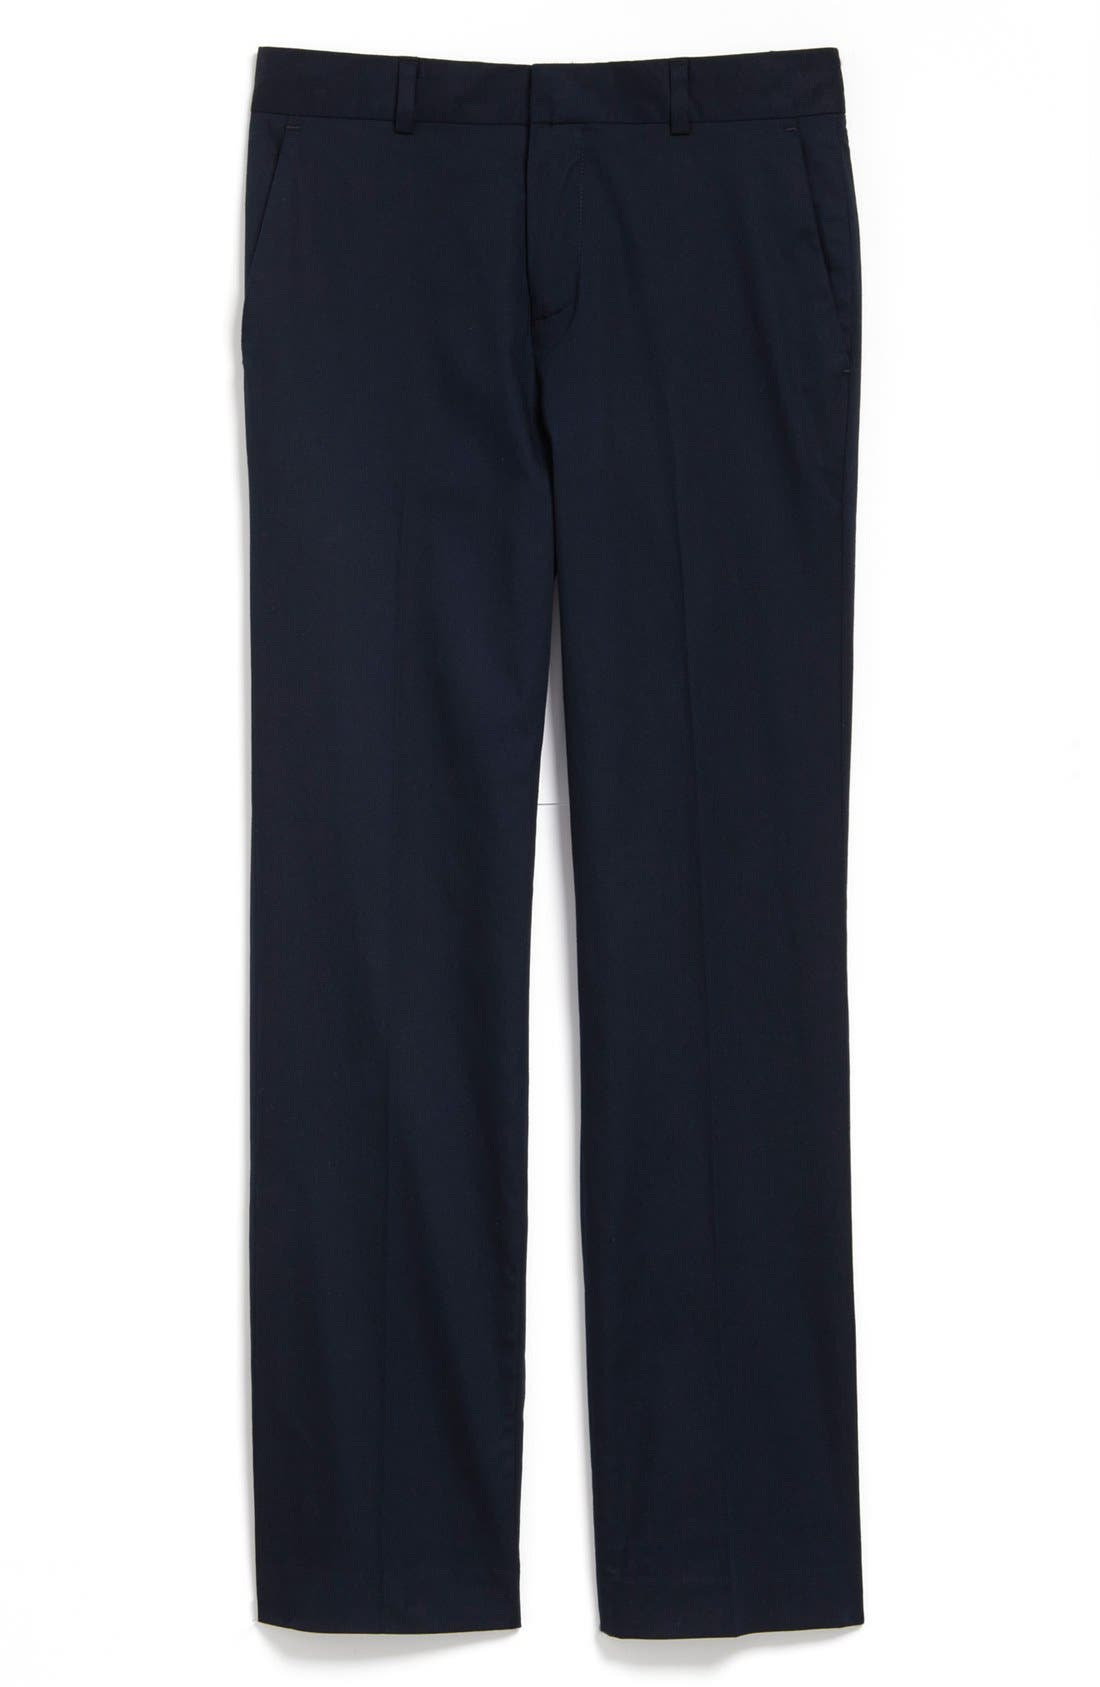 Main Image - C2 by Calibrate 'Sterling' Dress Pants